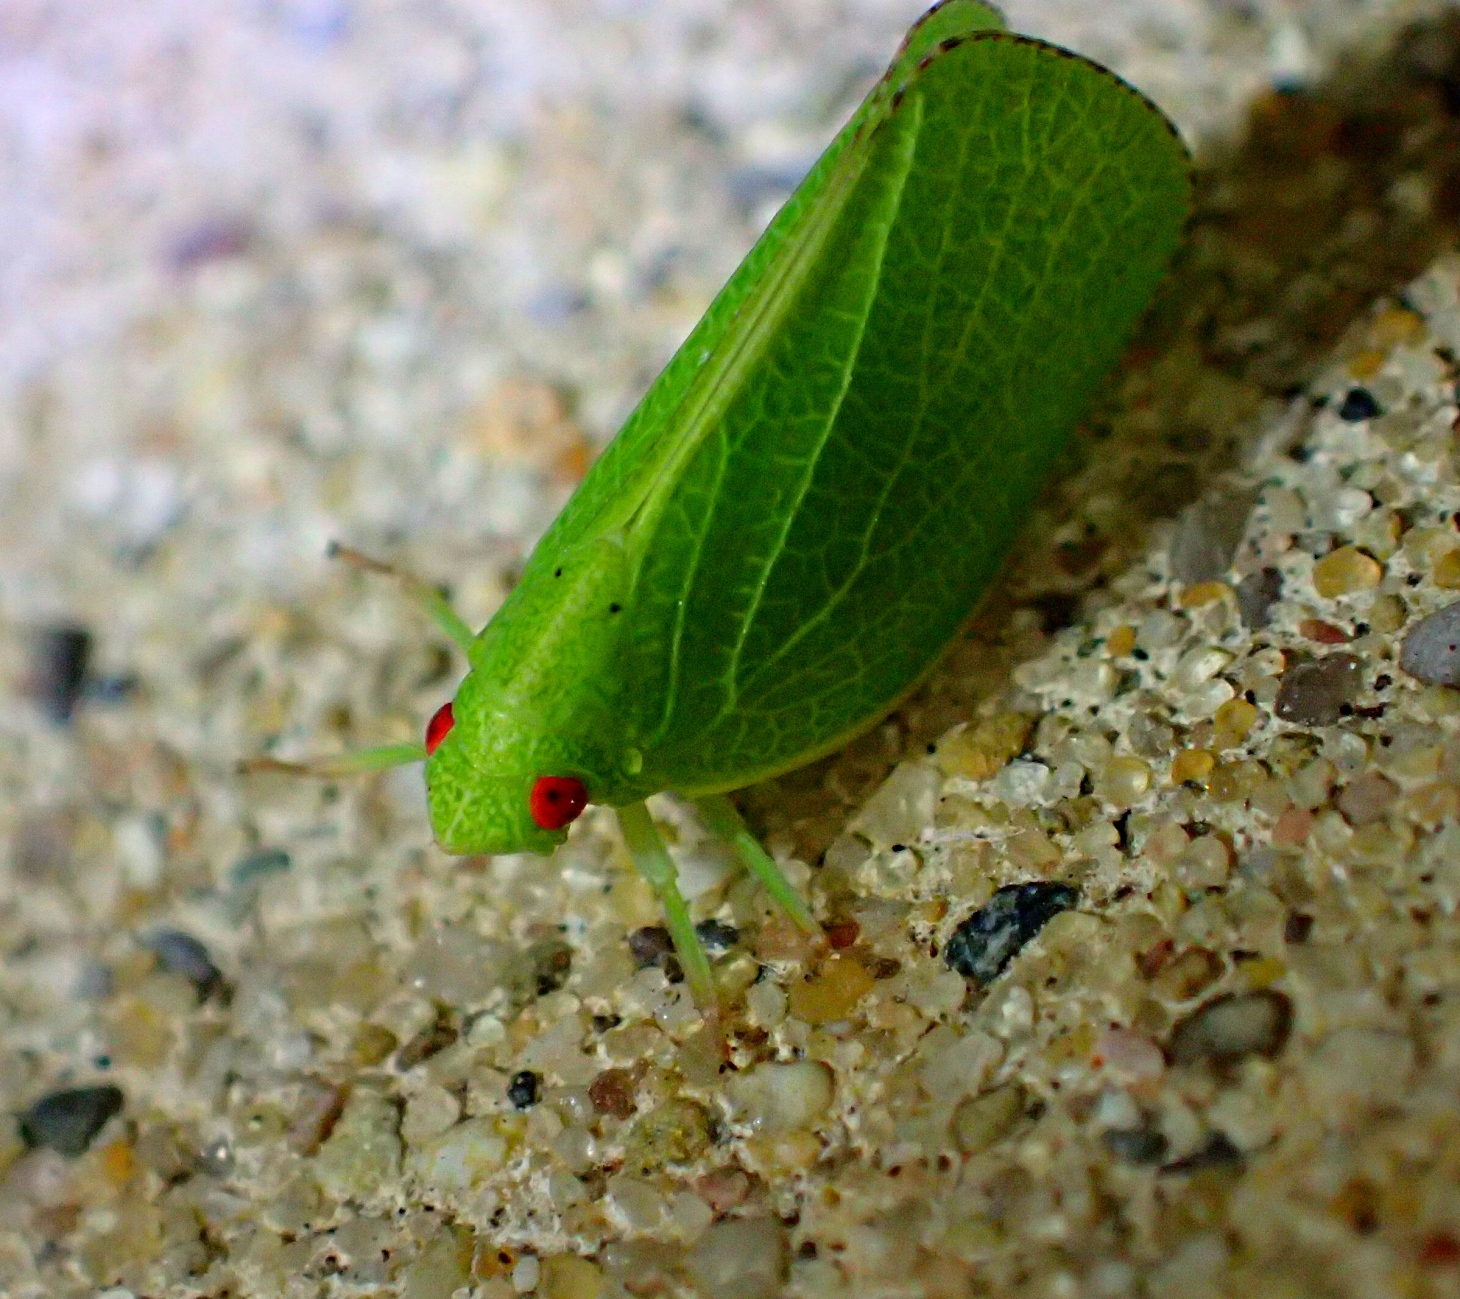 Planthopper. Enlightenment personified (1). Photo by Thomas Peace 2014